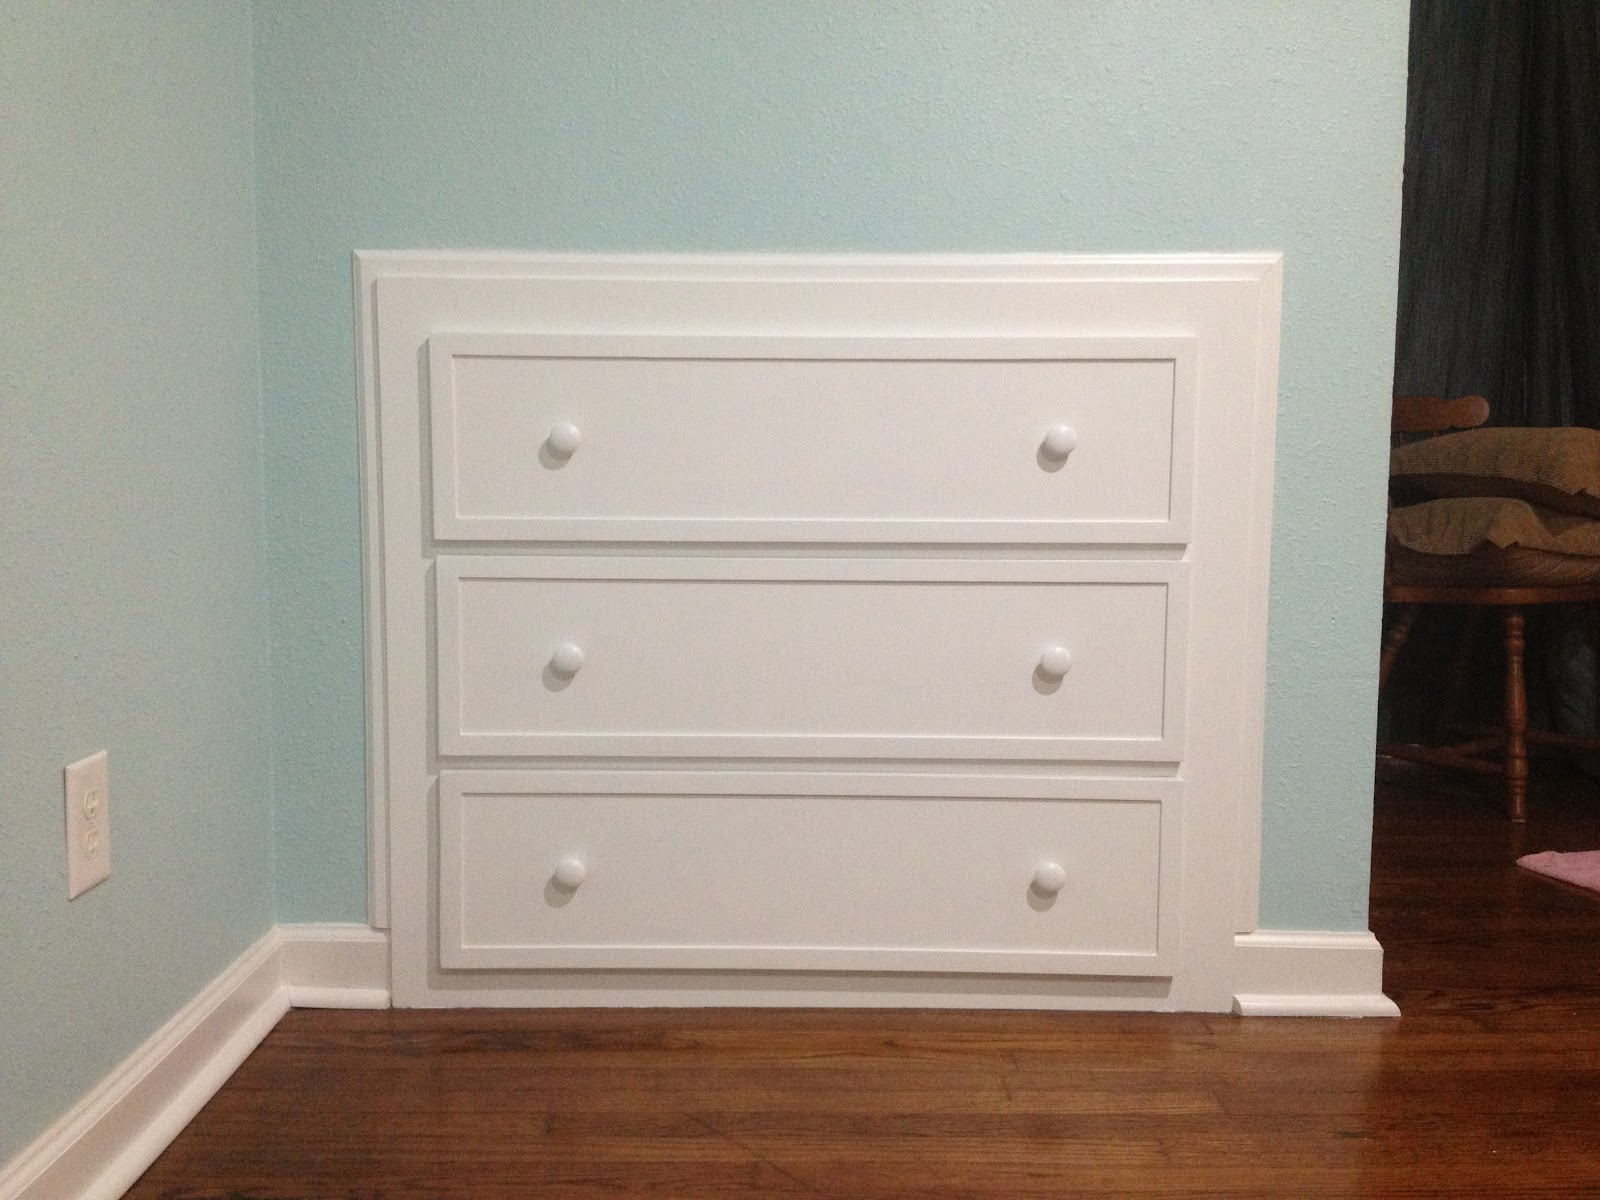 how to build dresser into wall plans diy free download how